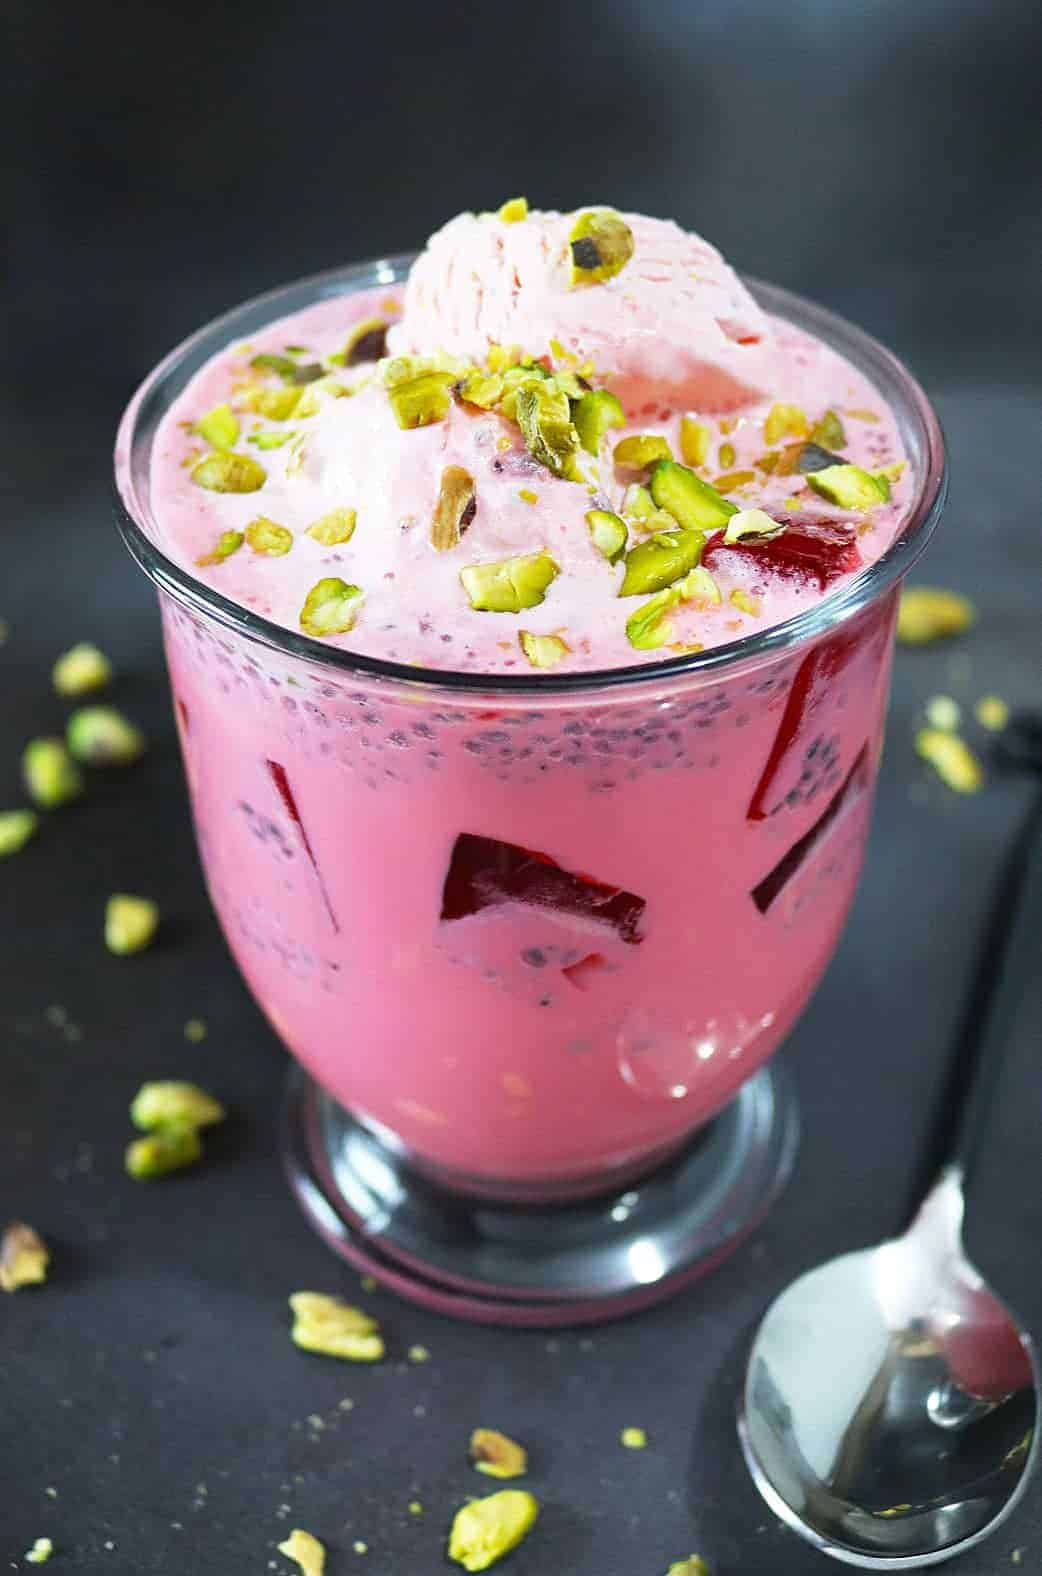 Falooda - A cool and delicious rose water and rose syrup beverage with basil seeds, tapioca pearls and almond extract, served with ice cream it will become a summer favorite